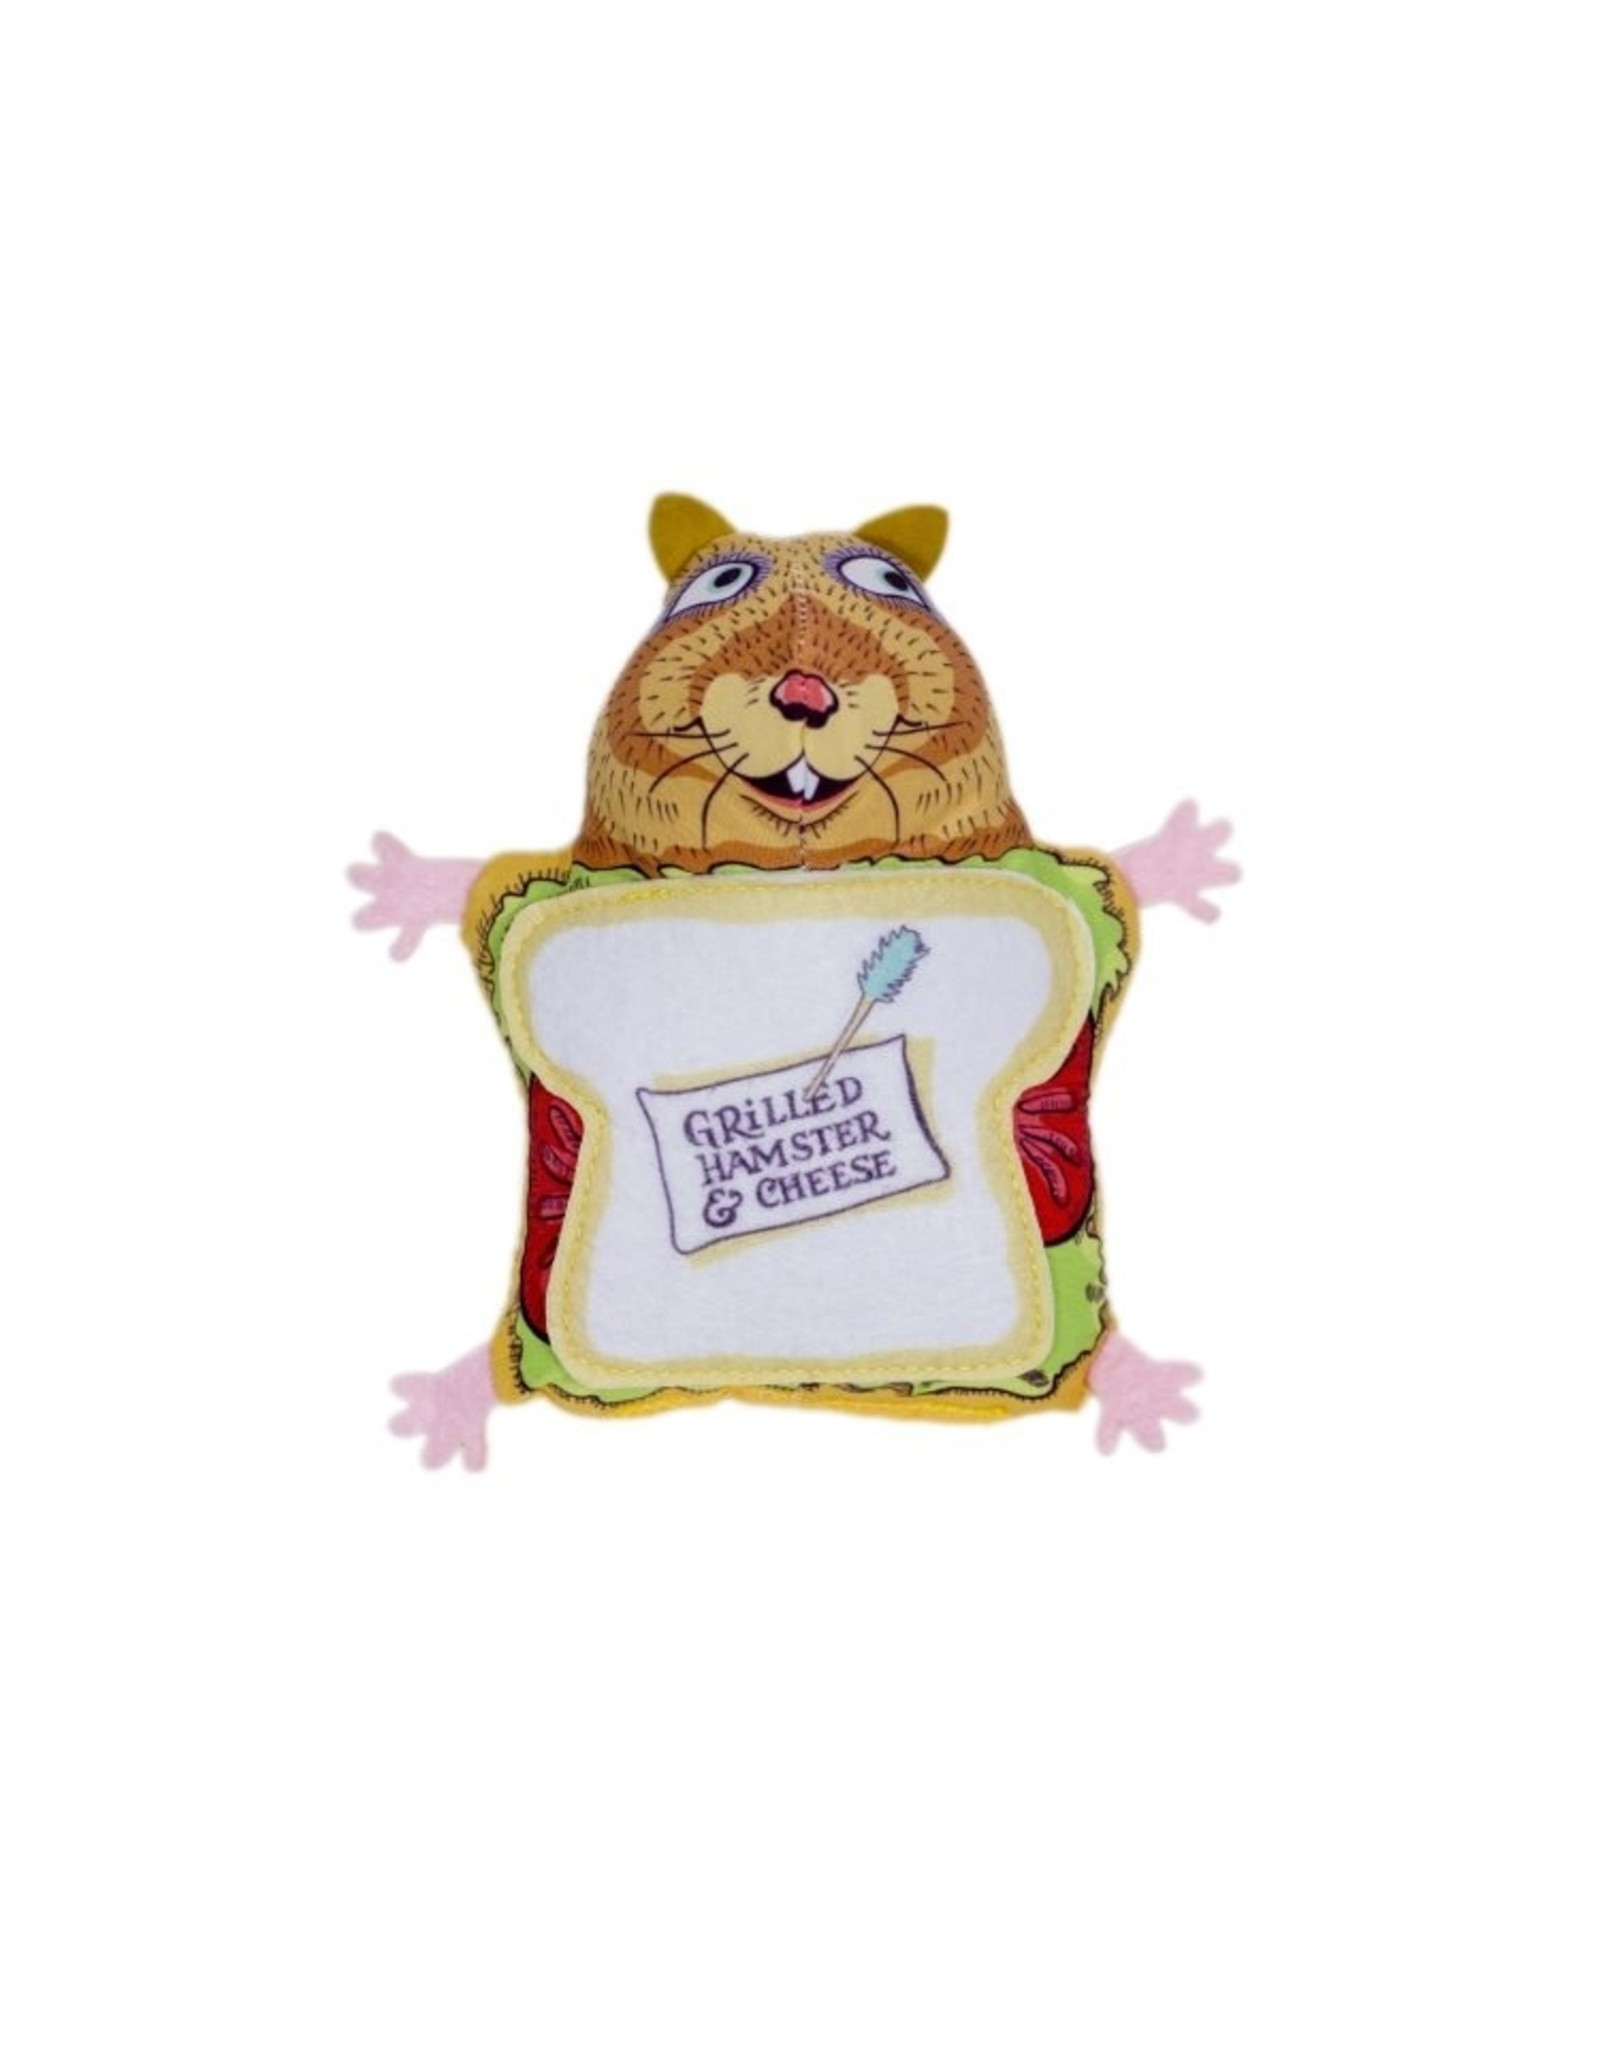 Fluffys Snack Bar Grilled Hamster and Cheese Cat Toy